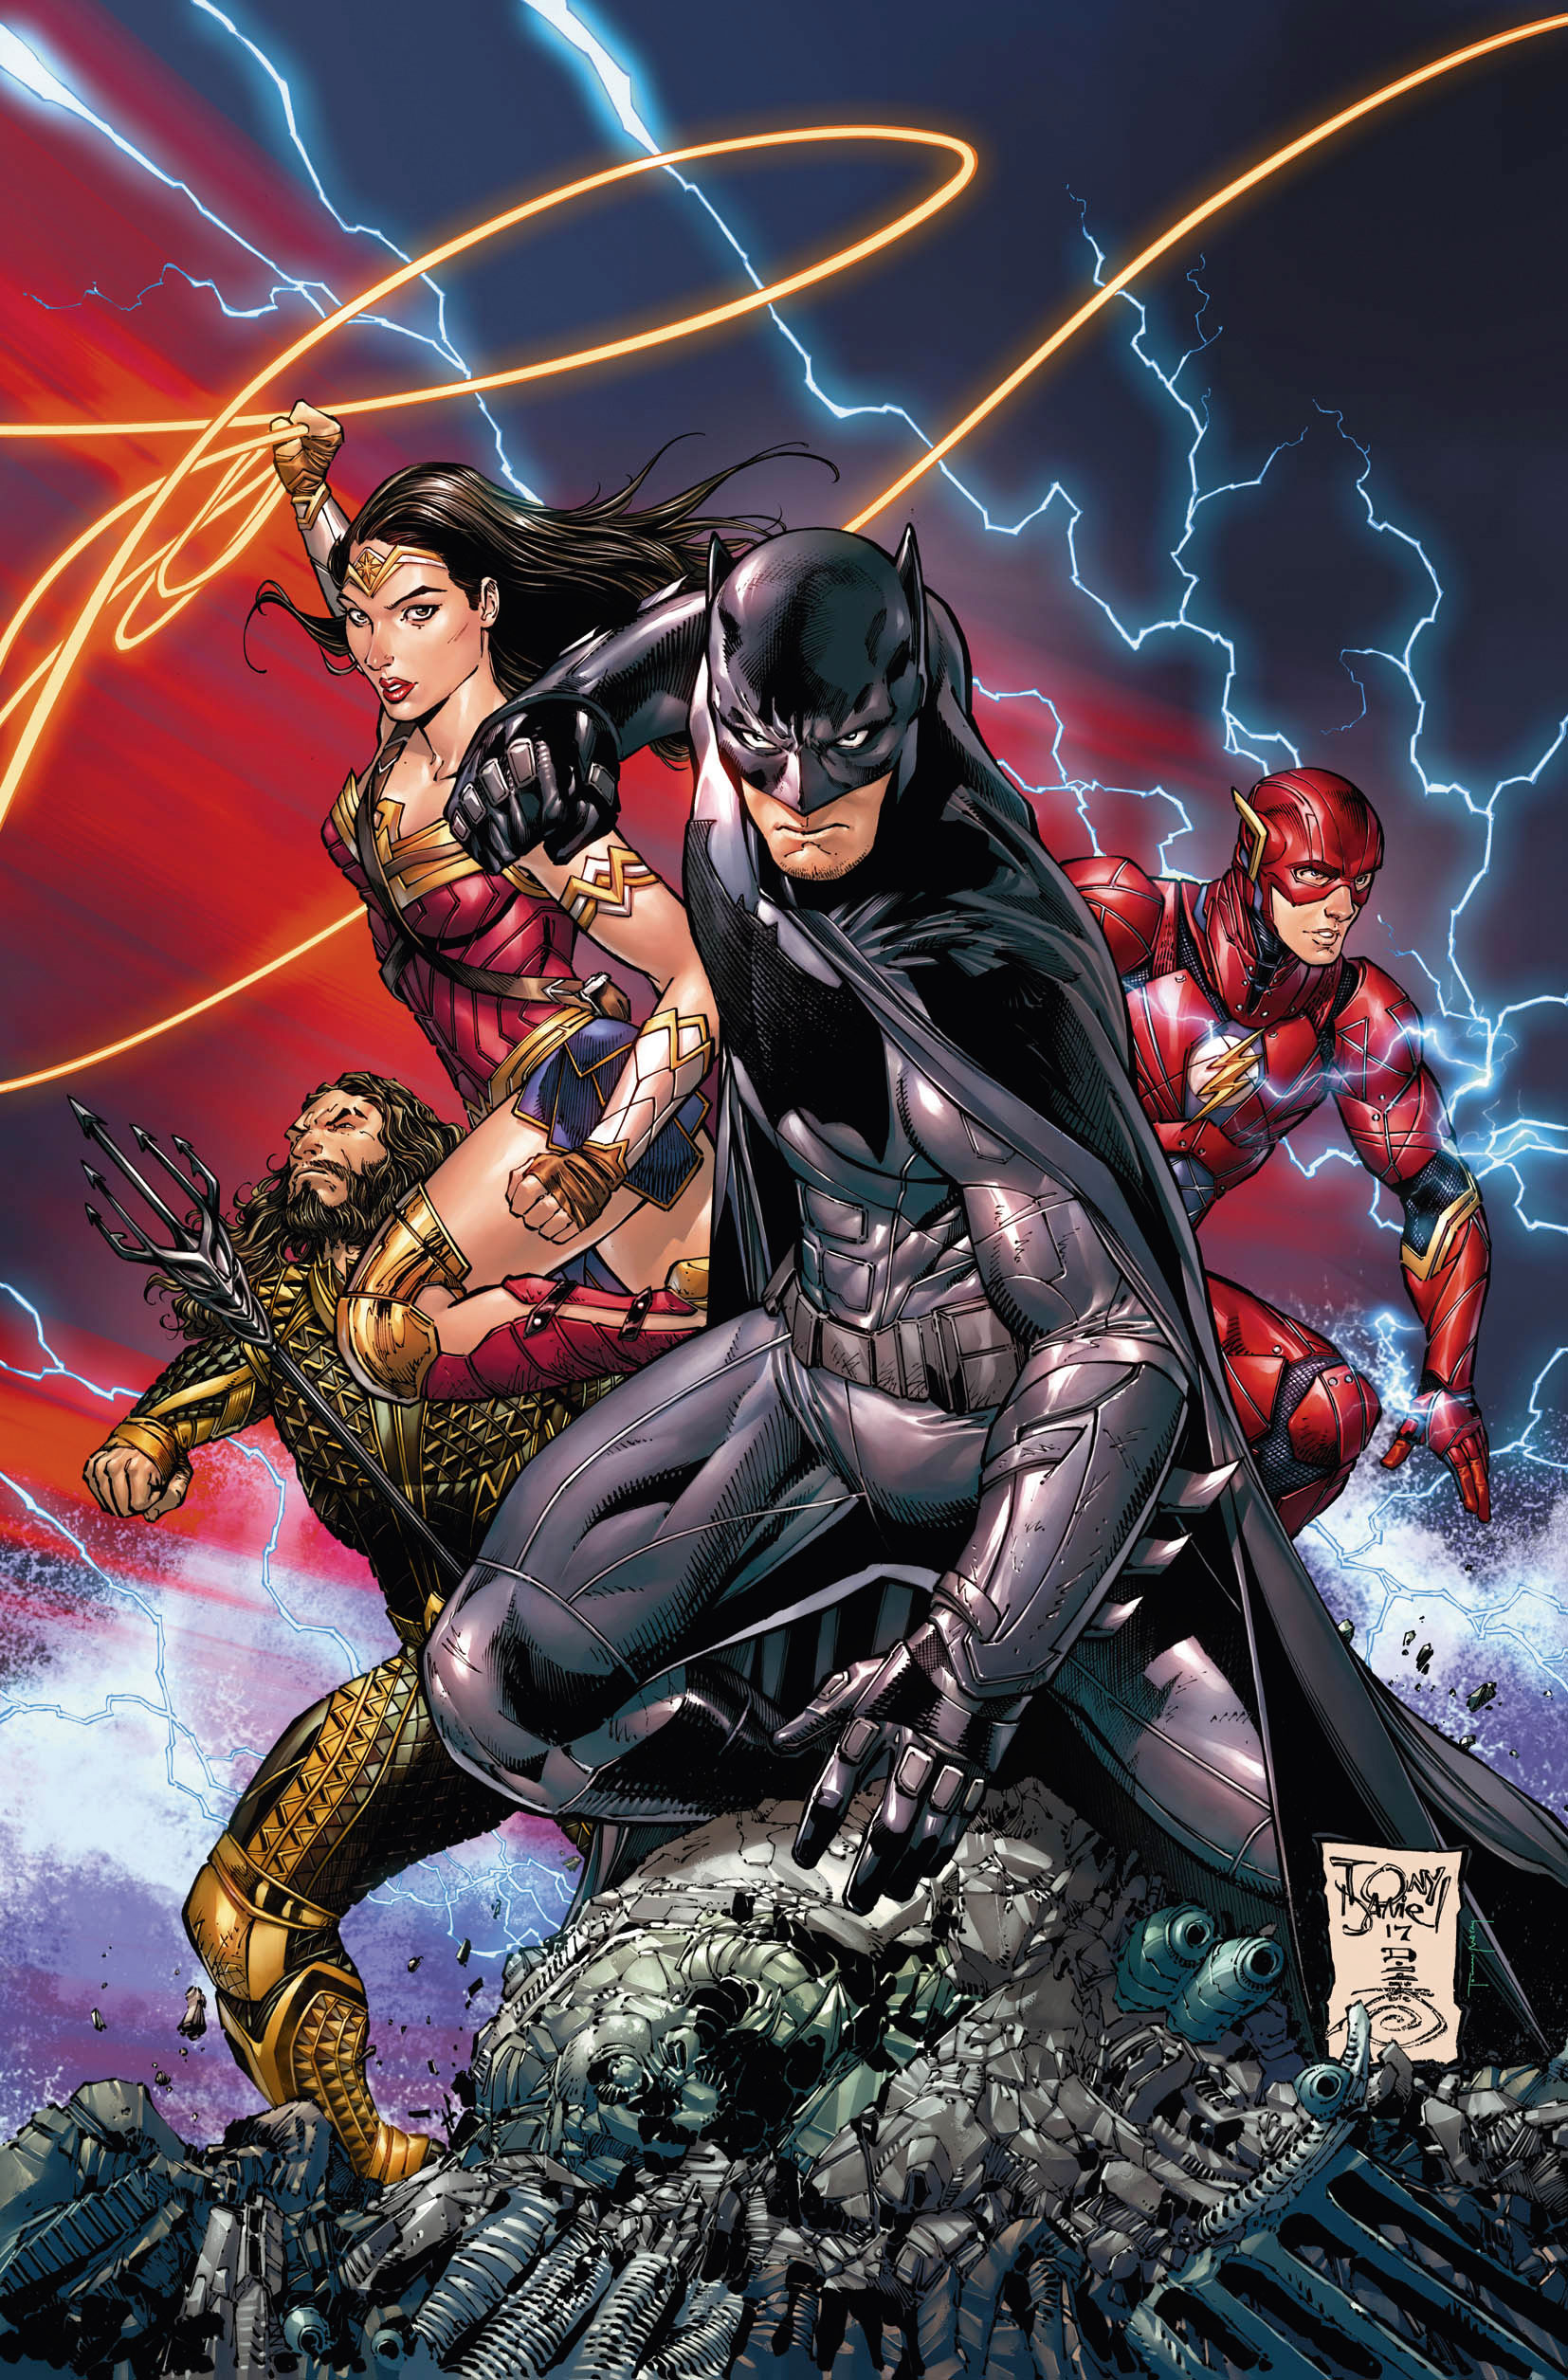 Aquaman, Wonder Woman, Batman and the Flash striking a heroic pose